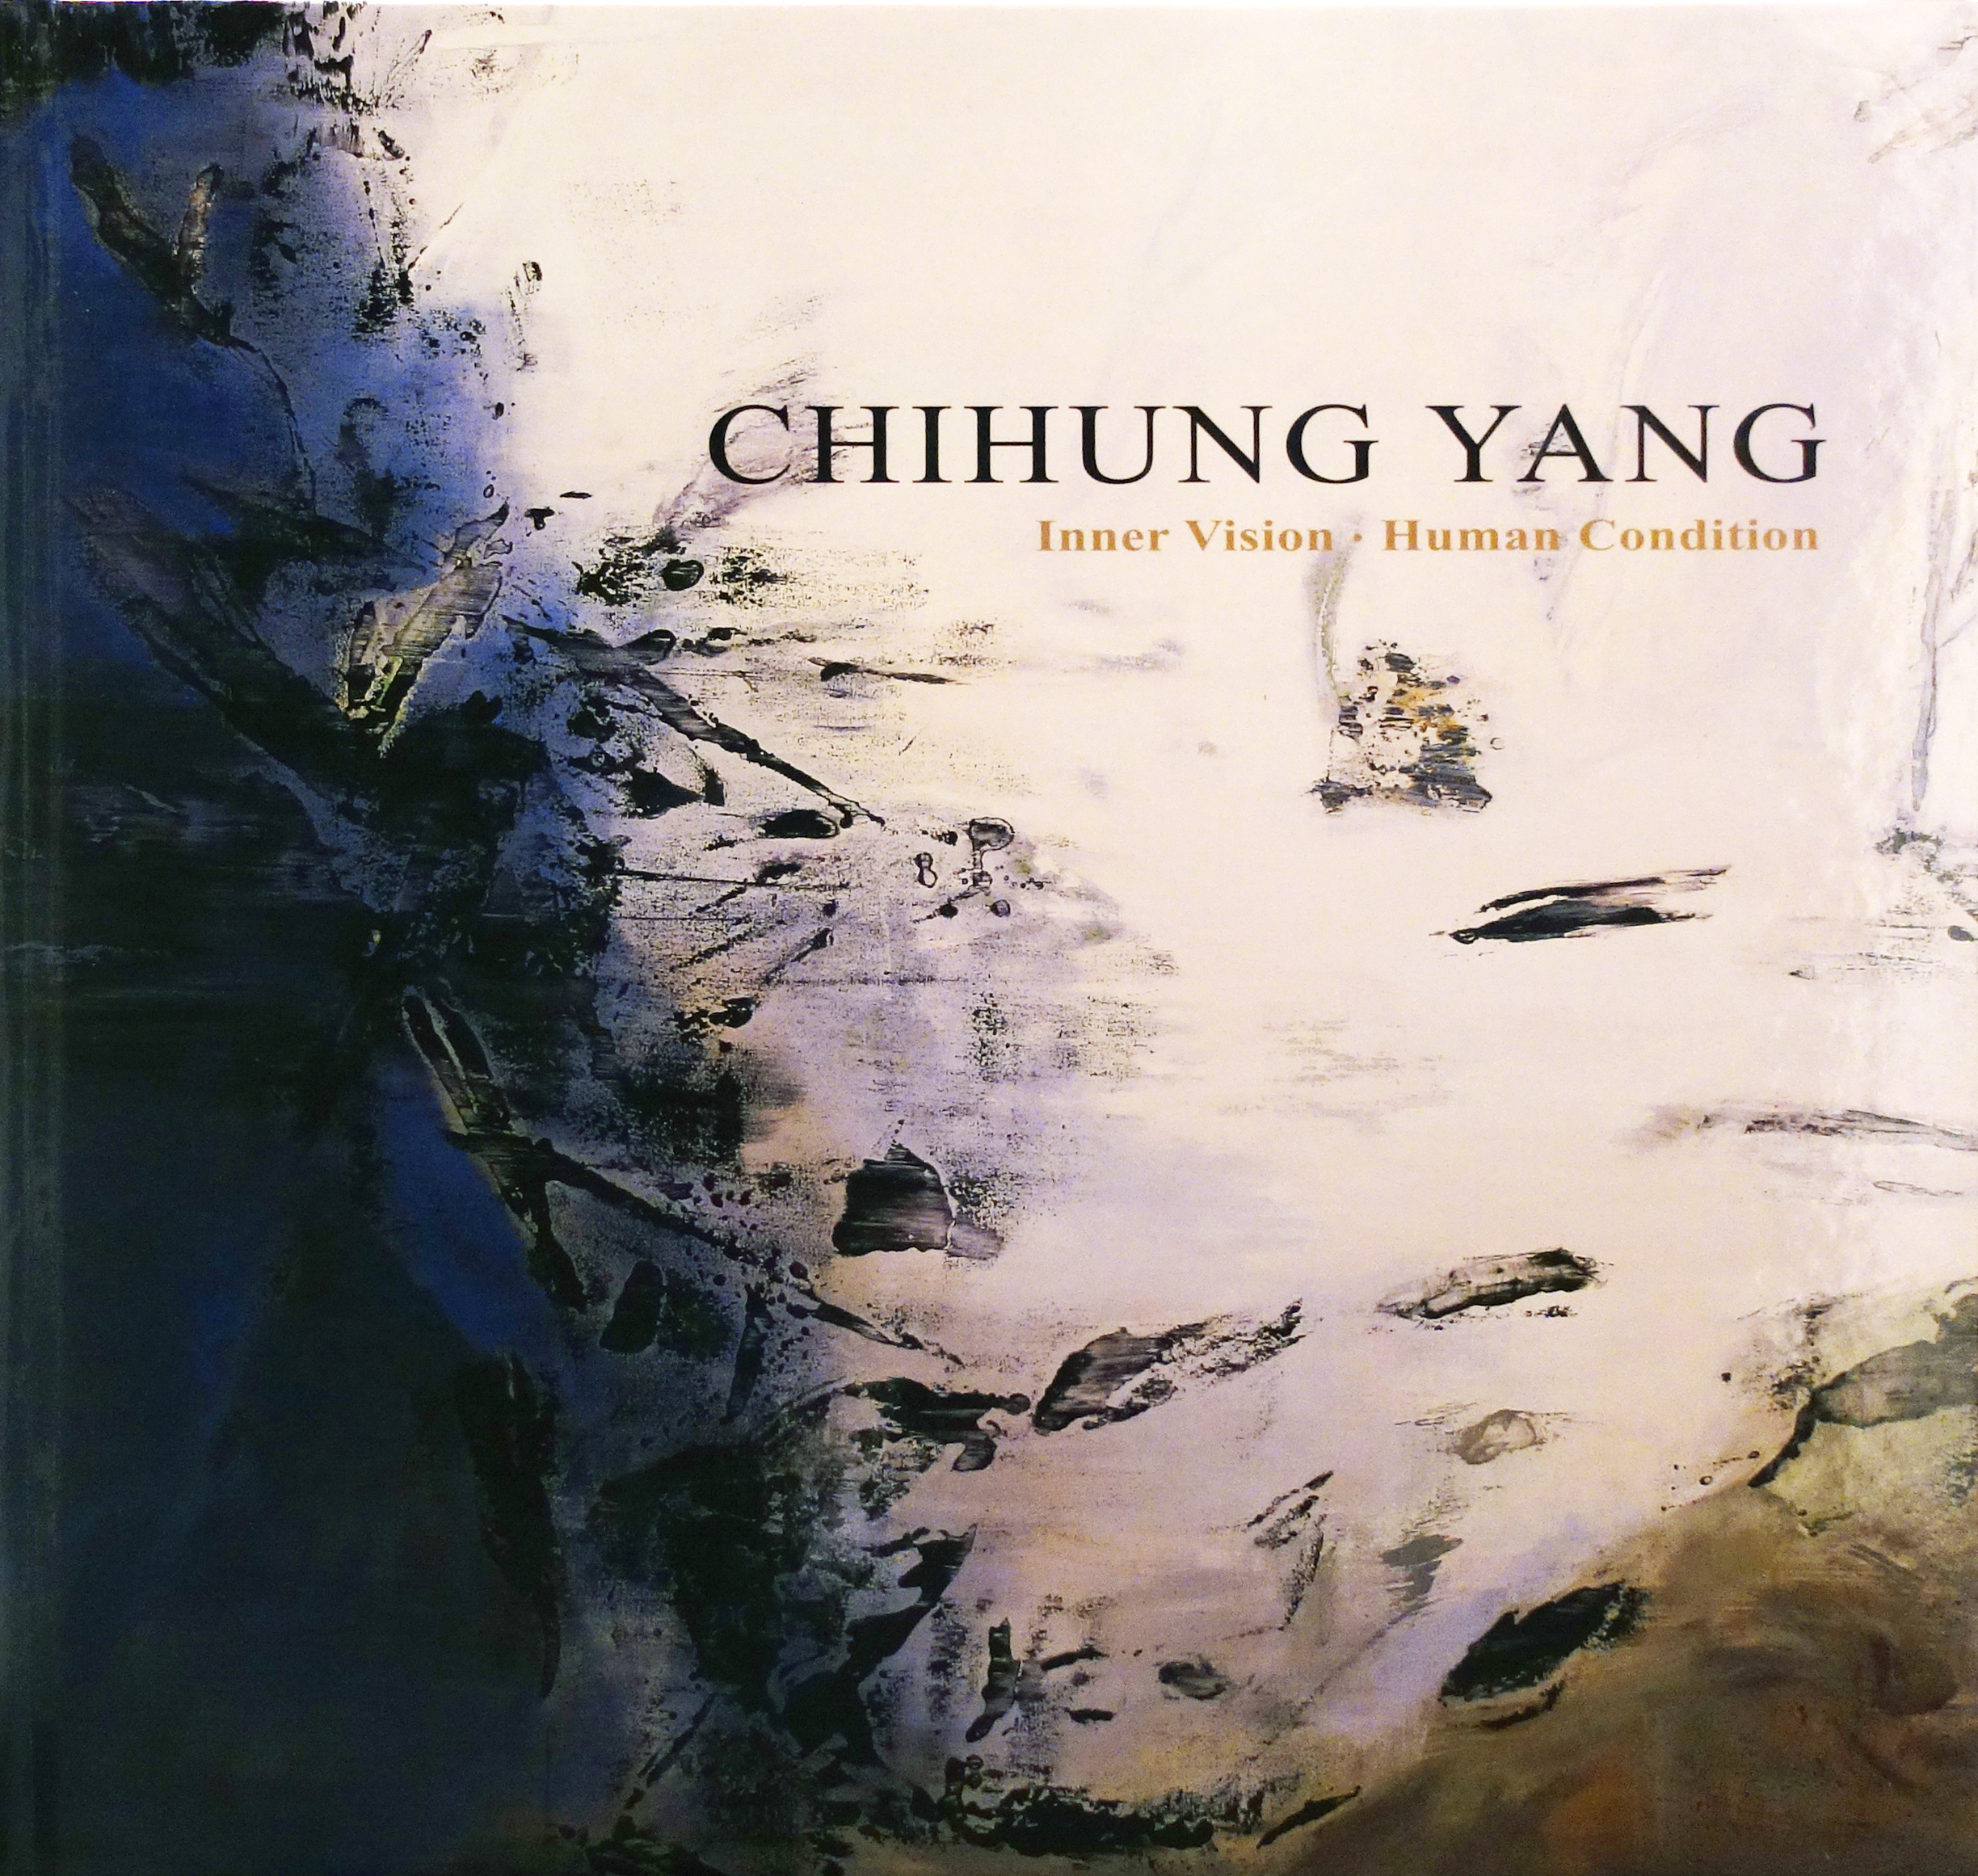 2007_4_Chihung Yang_Inner Vision.Human Condition